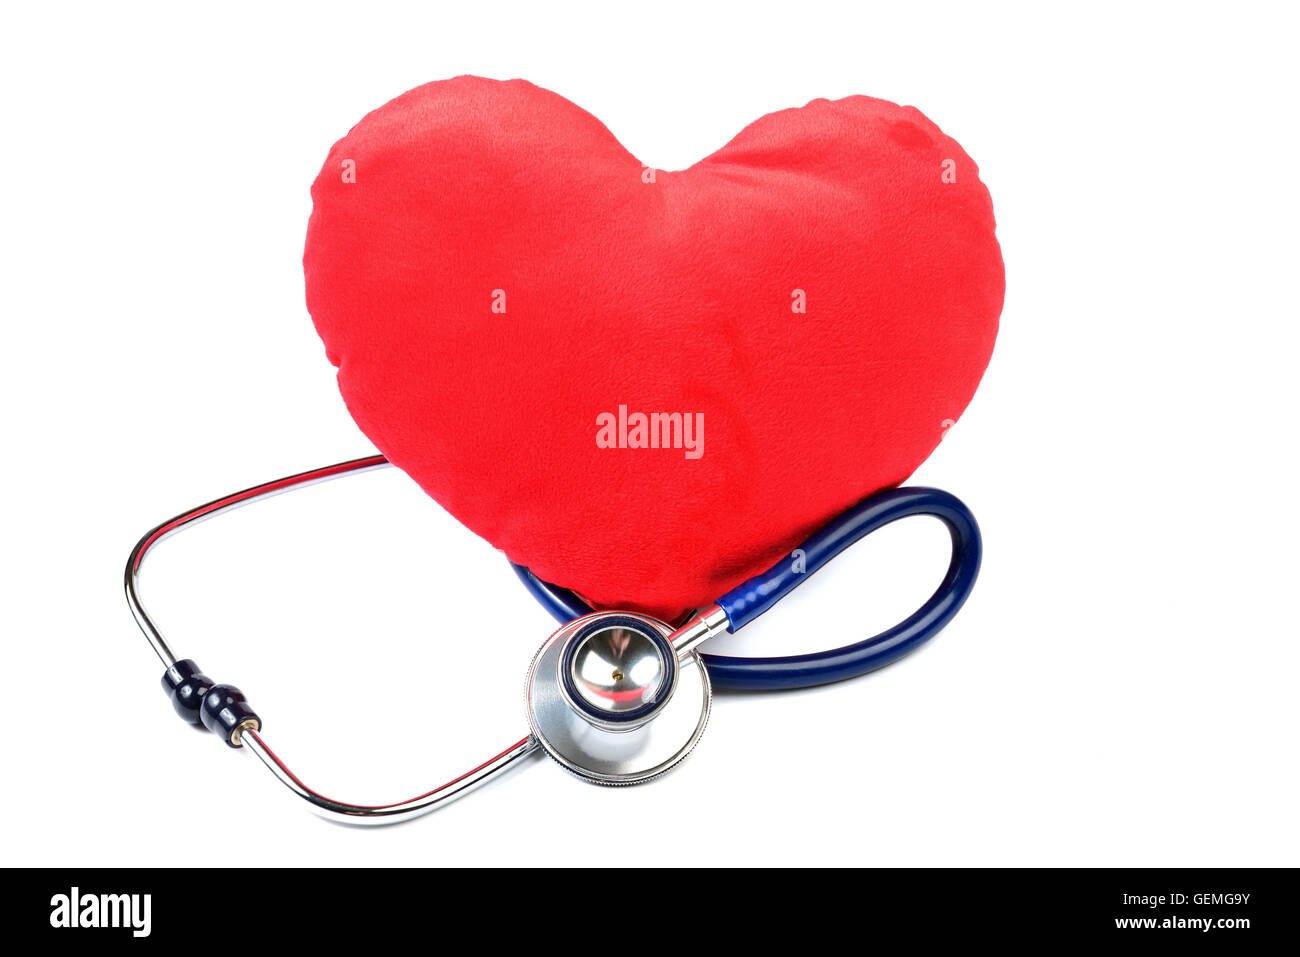 Heart with a Stethoscope isolated on white - Stock Image